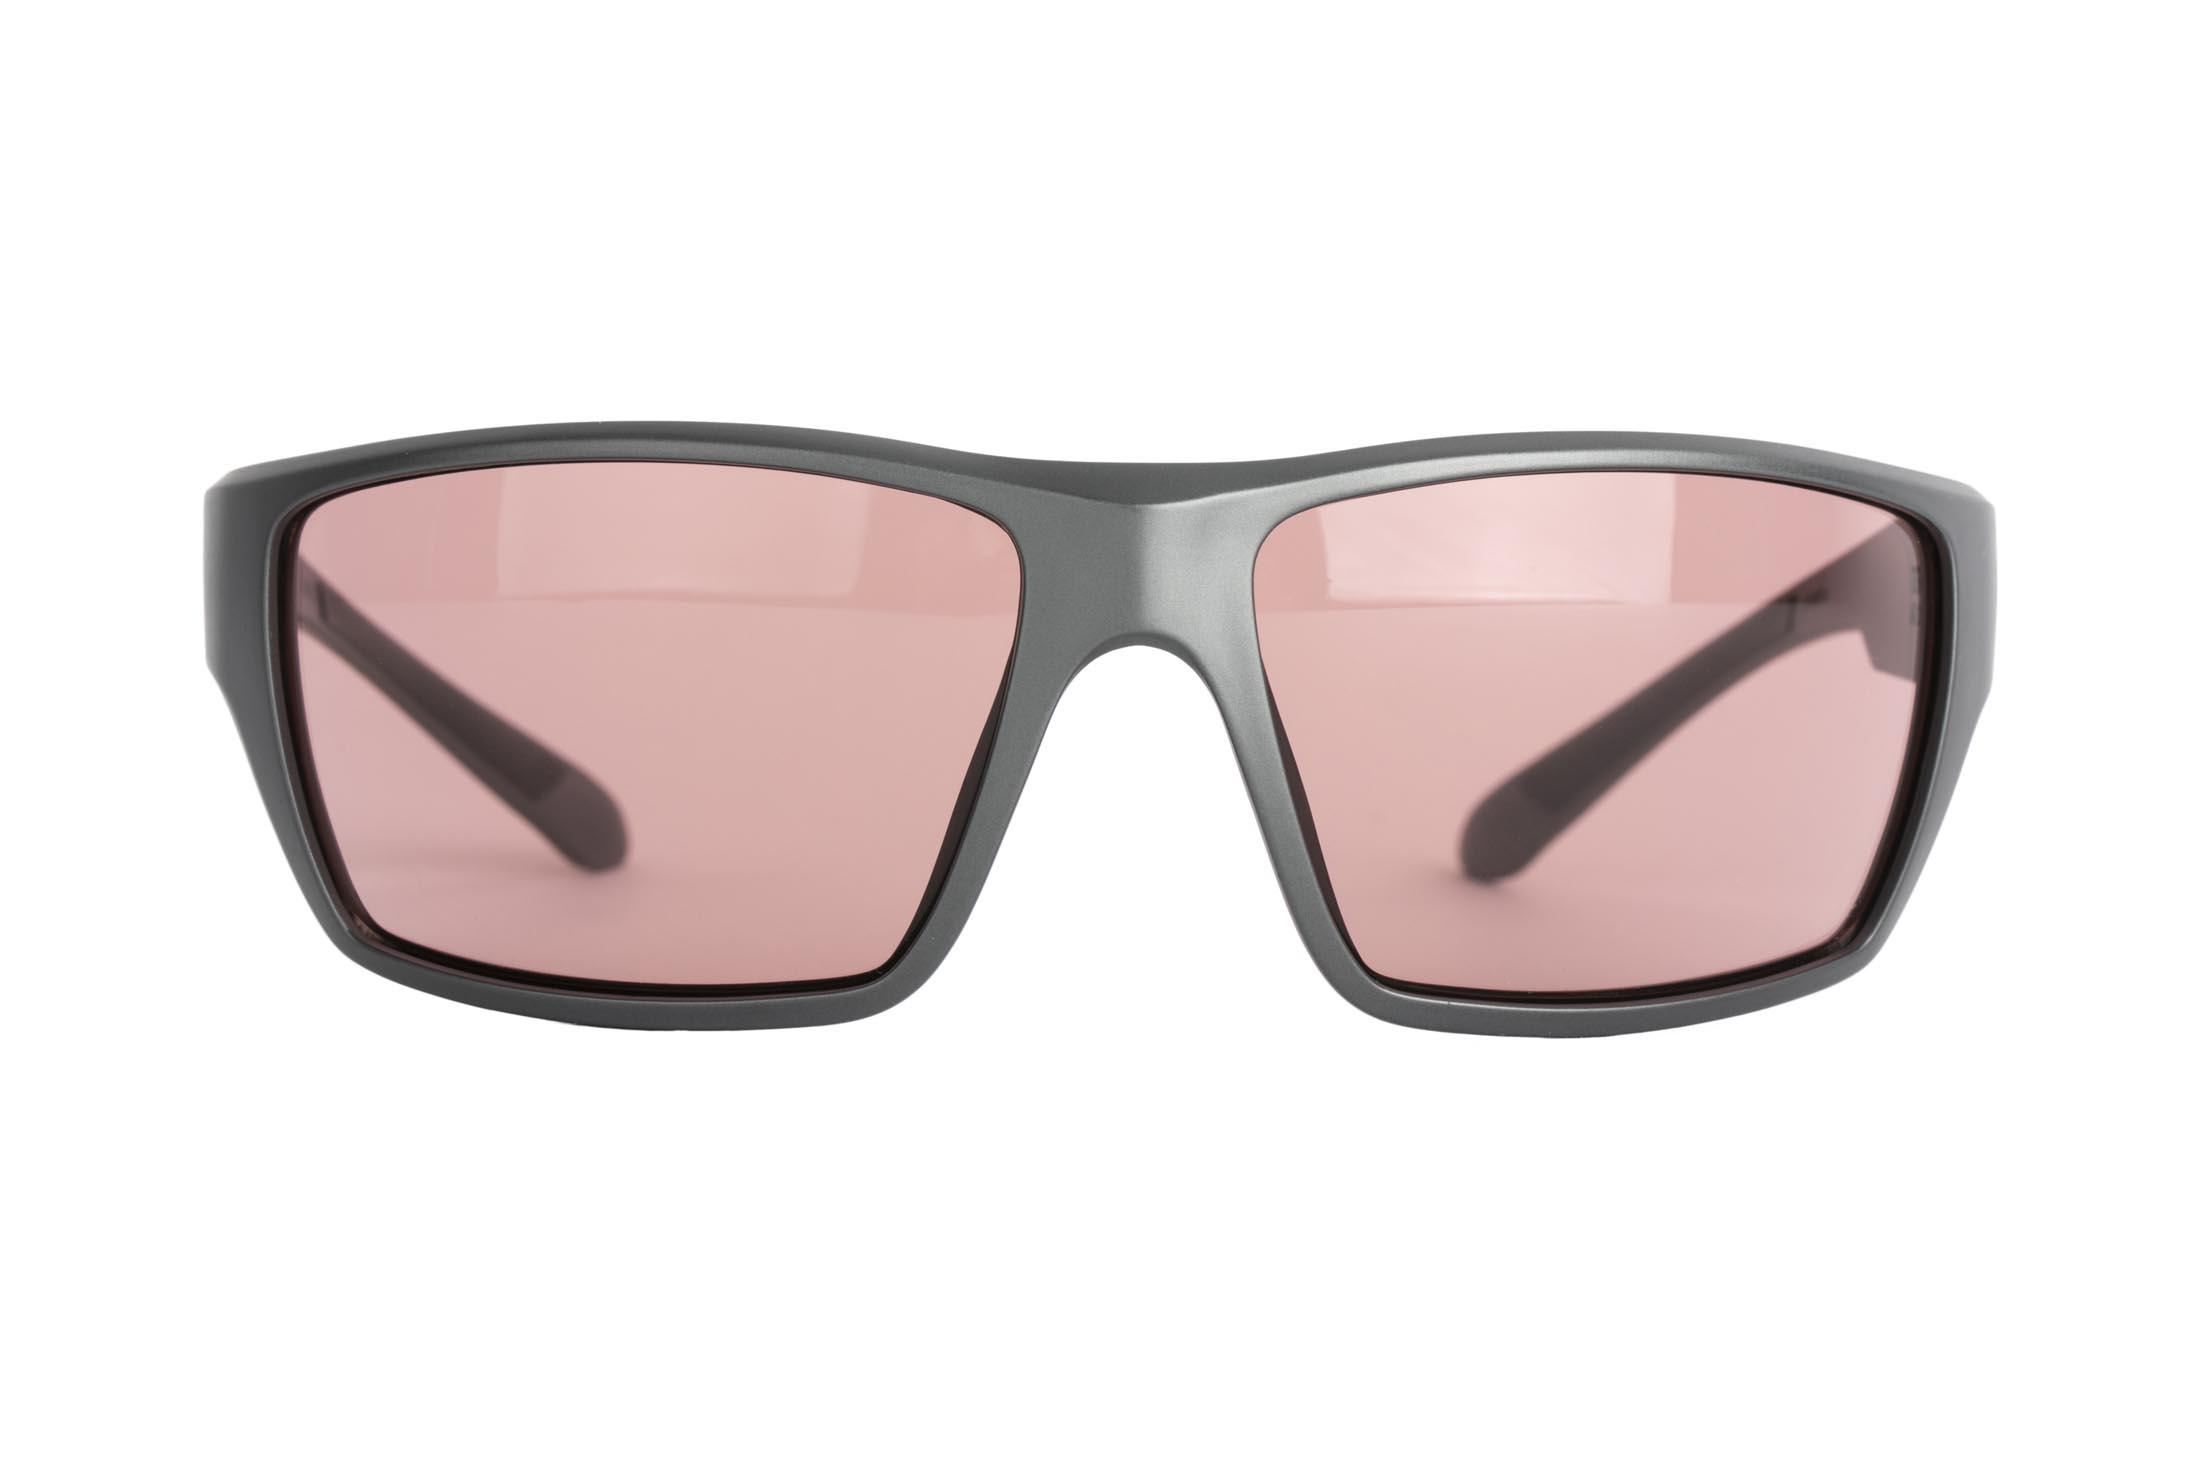 Magpul Terrain safety glasses gray frame and rose lenses are made from TR90ZZ theromplastic for exceptional durability